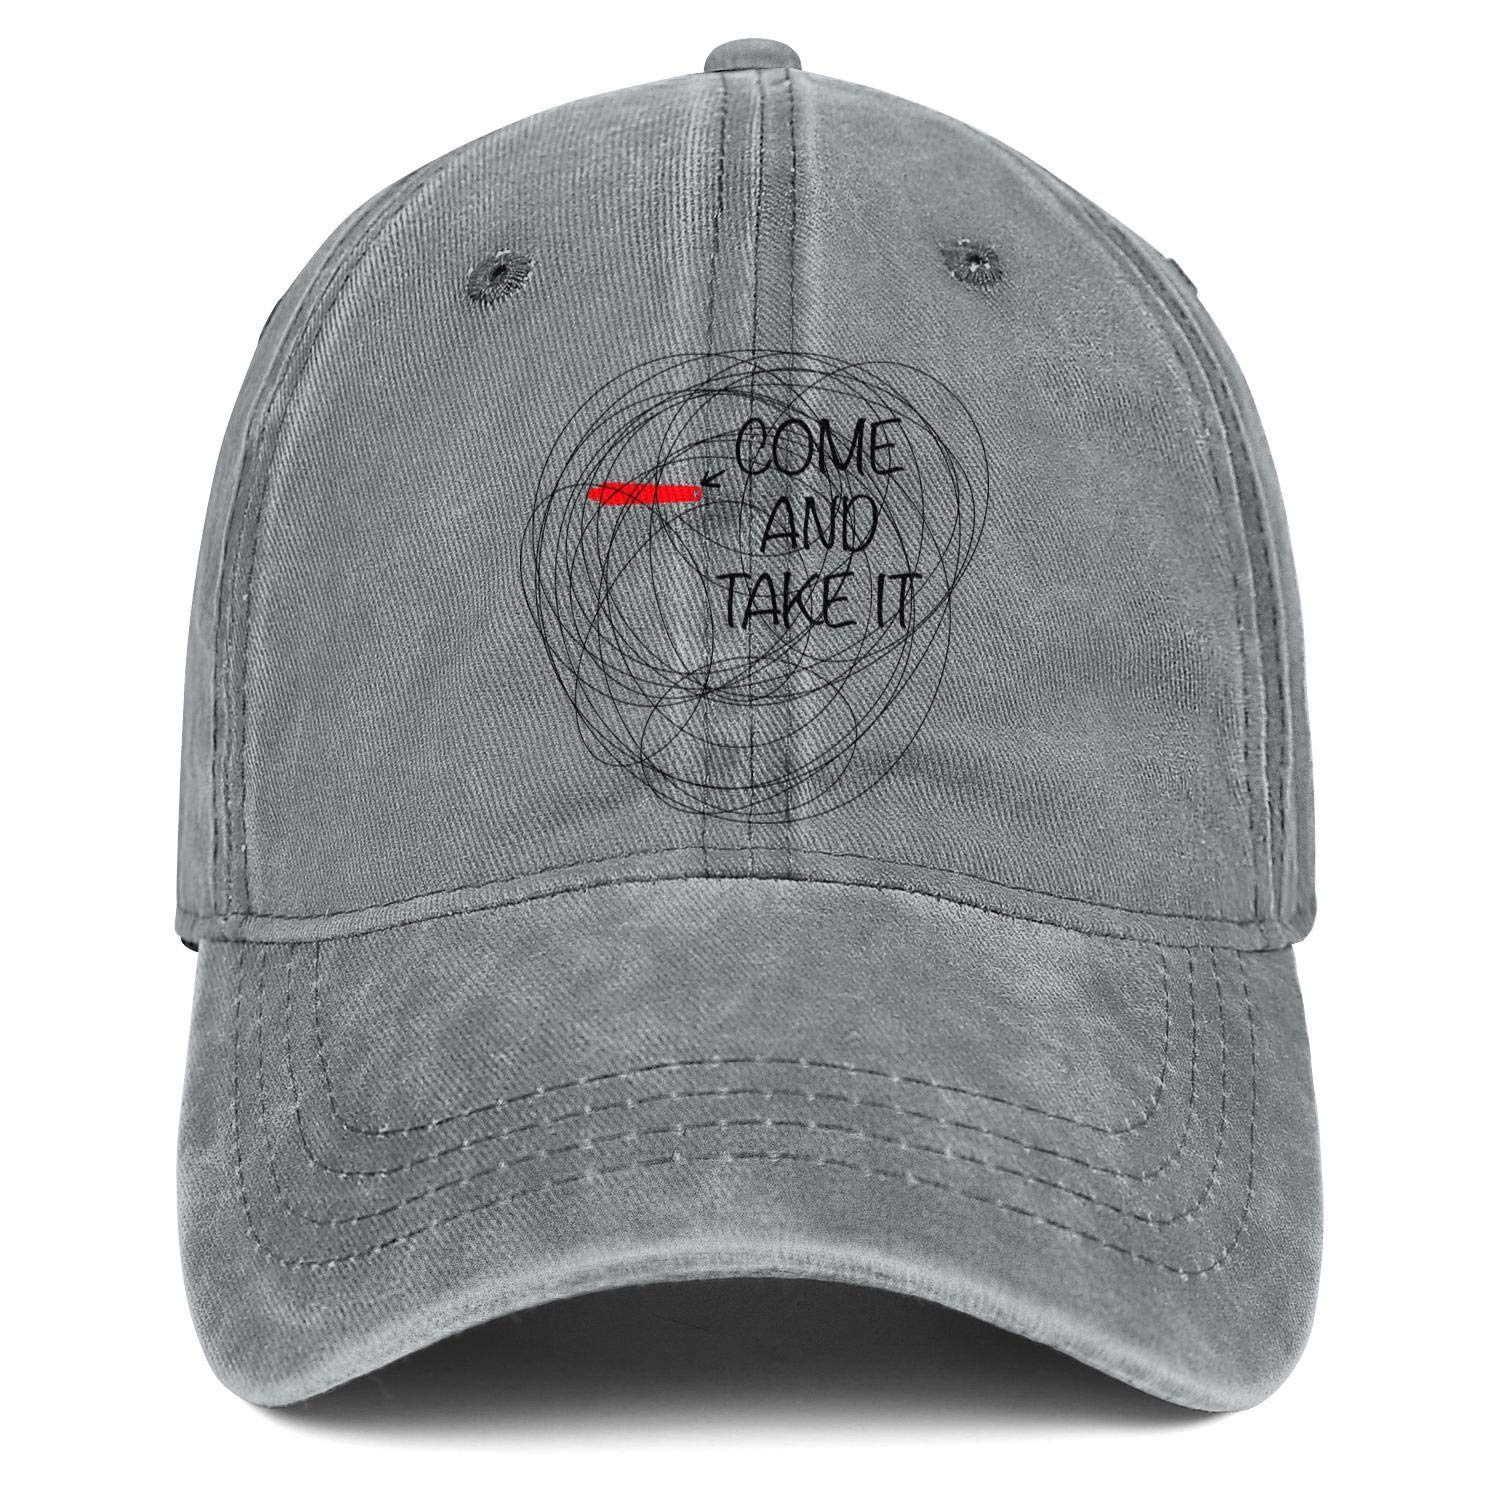 Personalized Jeans Dad Hats All Cotton Jean Mens Baseball Caps Unisex Snapbacks for Women Cool Ball Caps